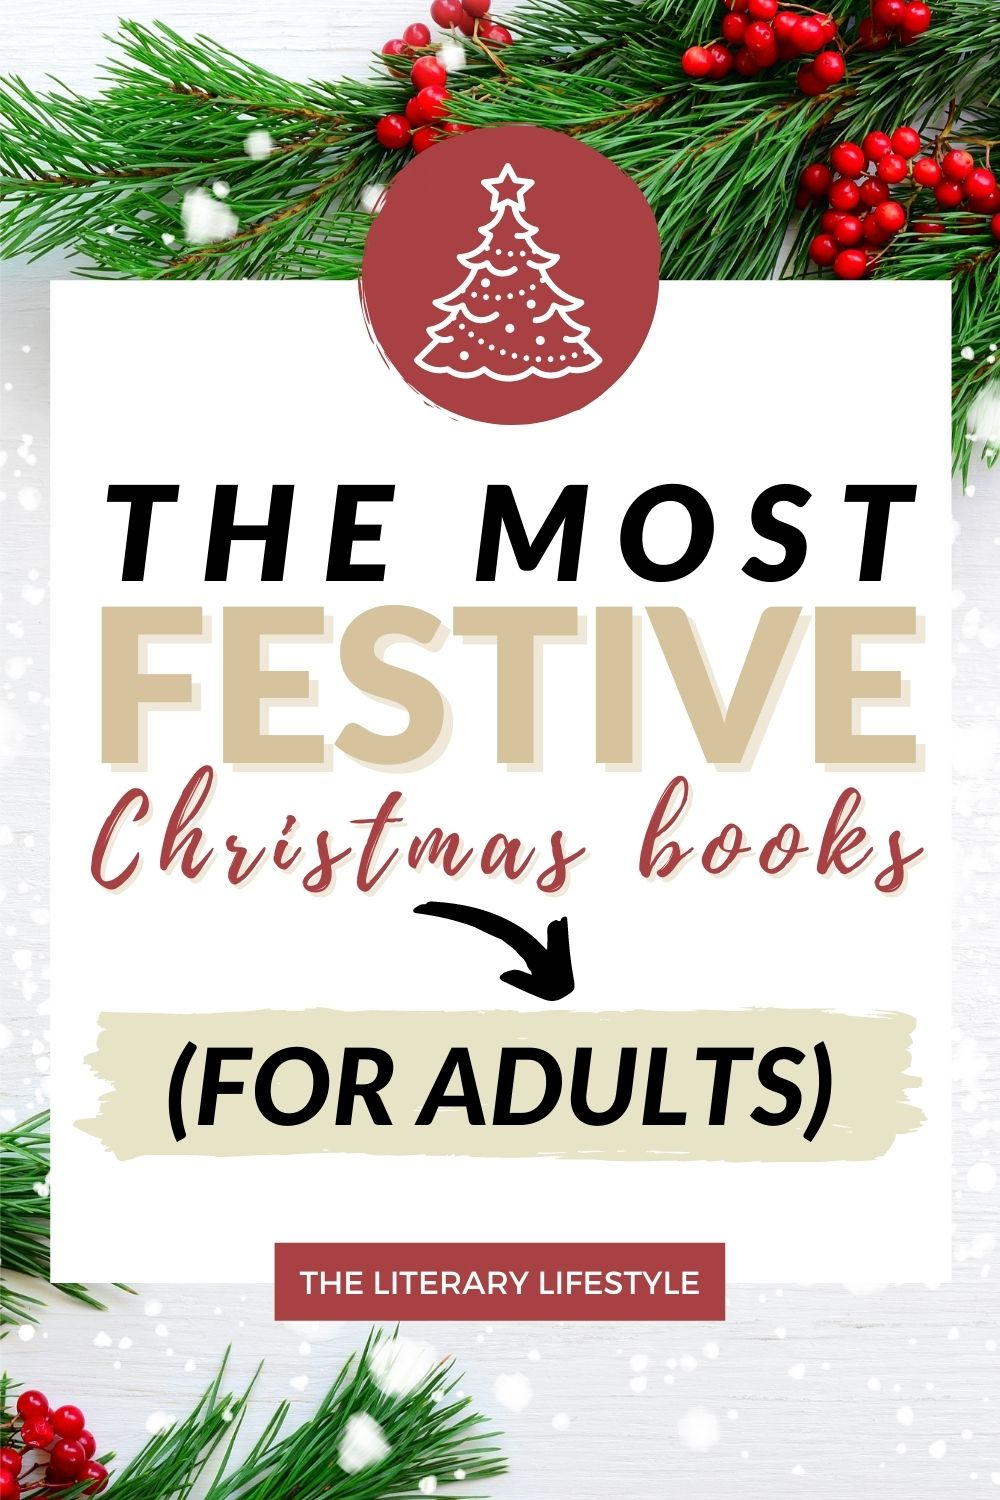 The Most Festive Christmas Books for Adults